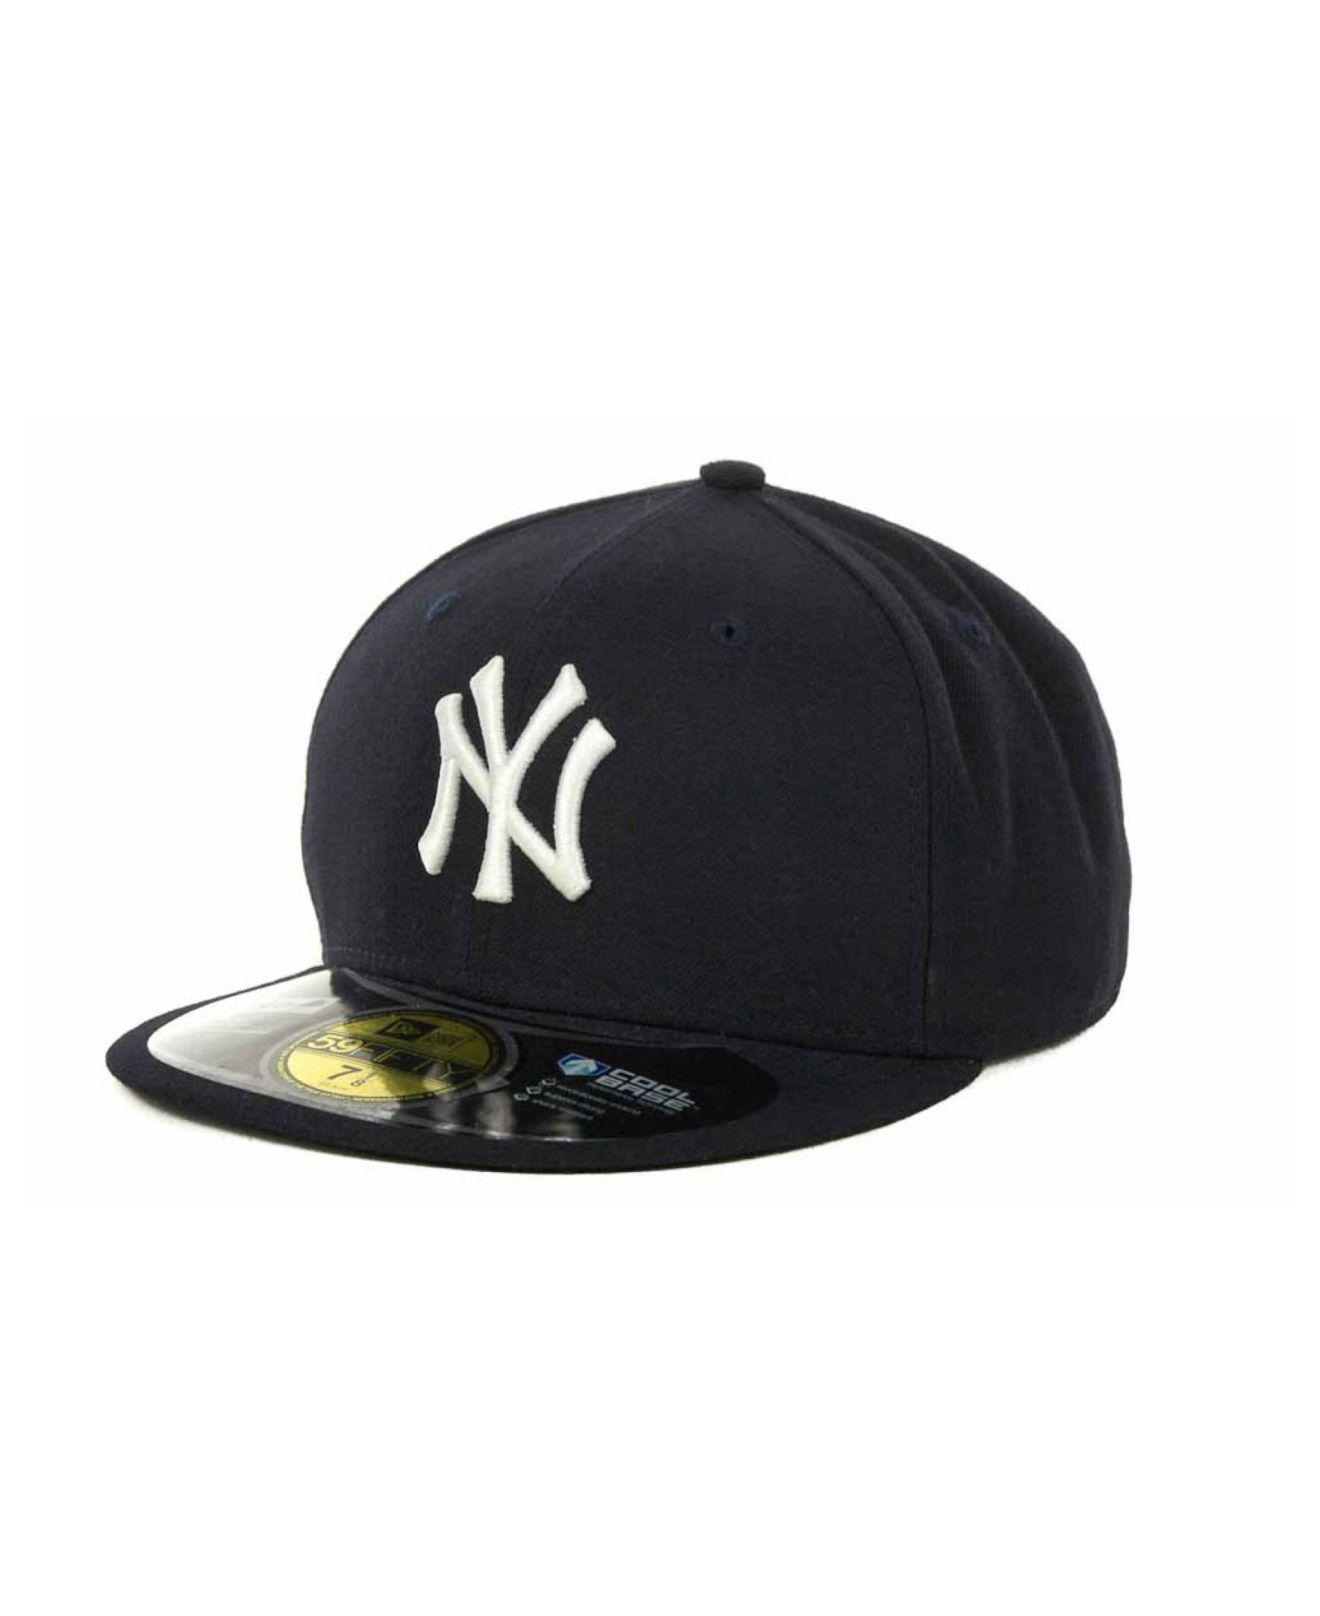 5d387400d0f Lyst - KTZ New York Yankees Authentic Collection 59fifty Hat in Blue ...